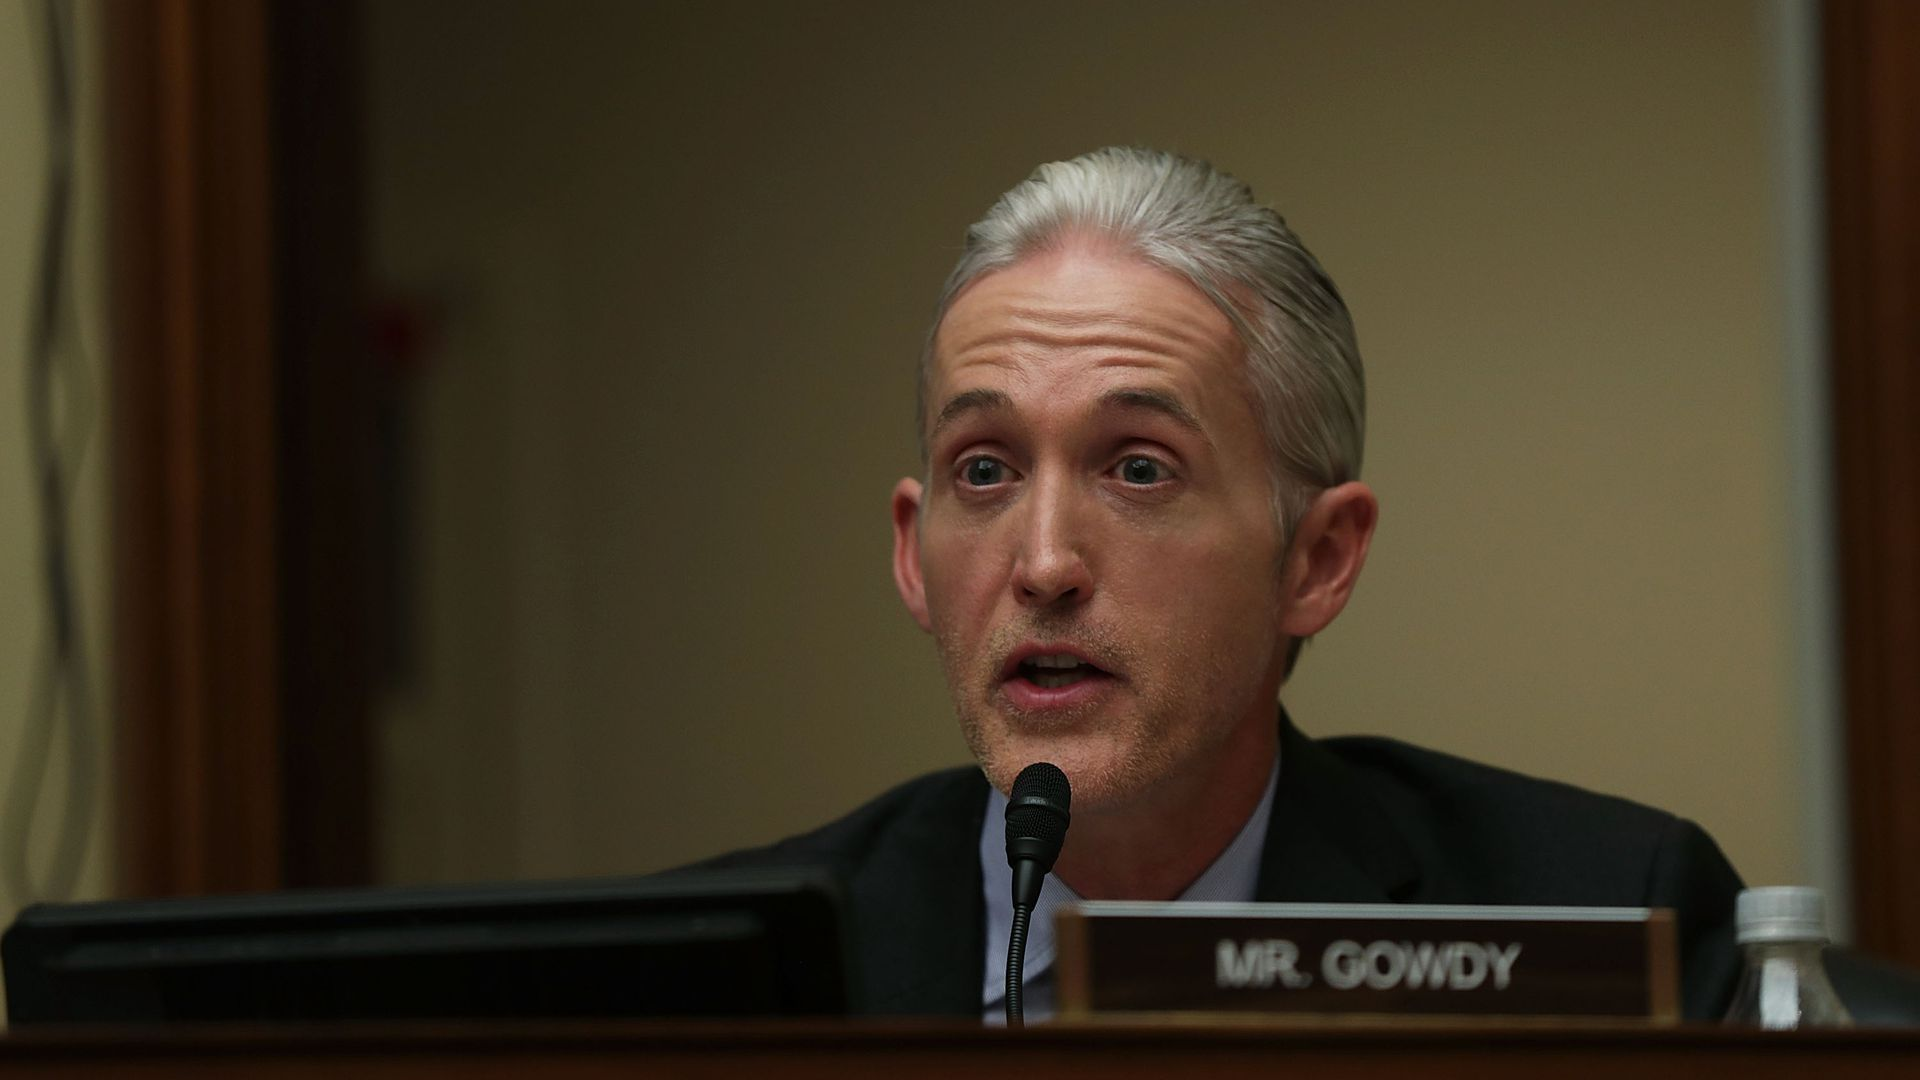 Rep. Trey Gowdy (R-SC) speaks during a hearing before House Oversight and Government Reform Committee.